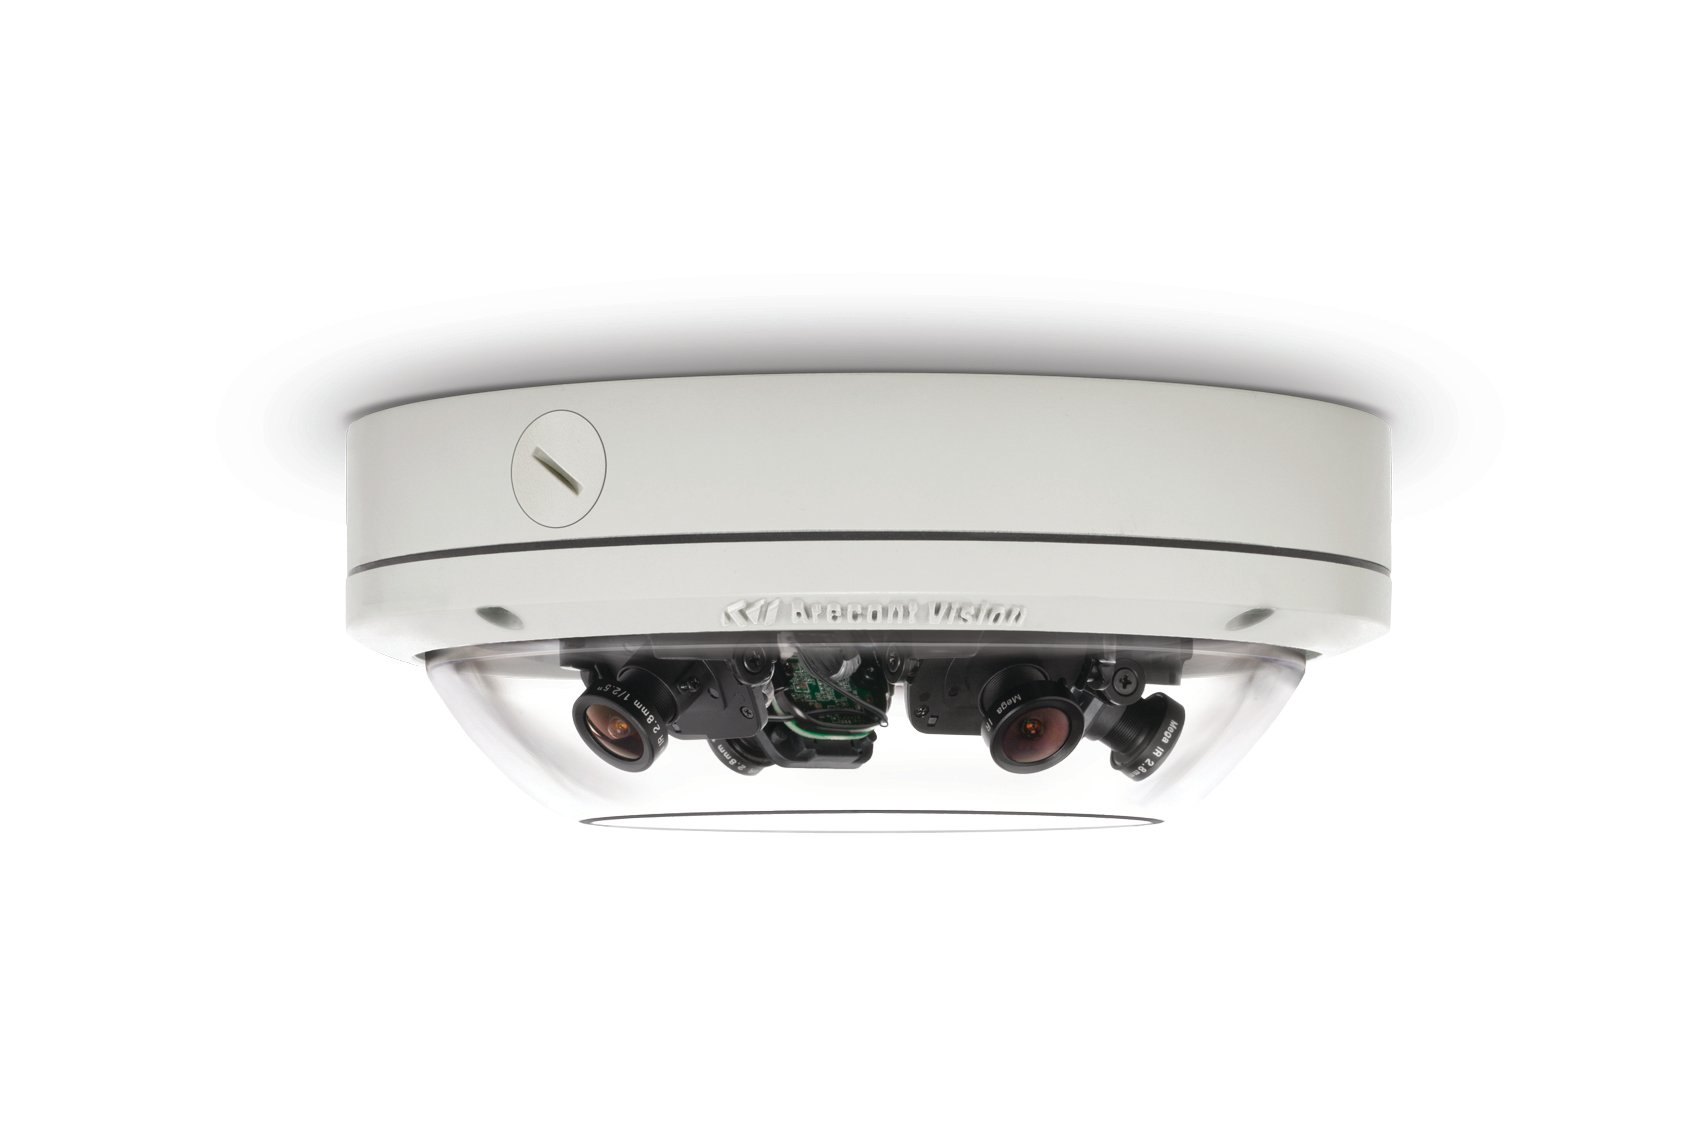 SurroundVideo_Omni_Front